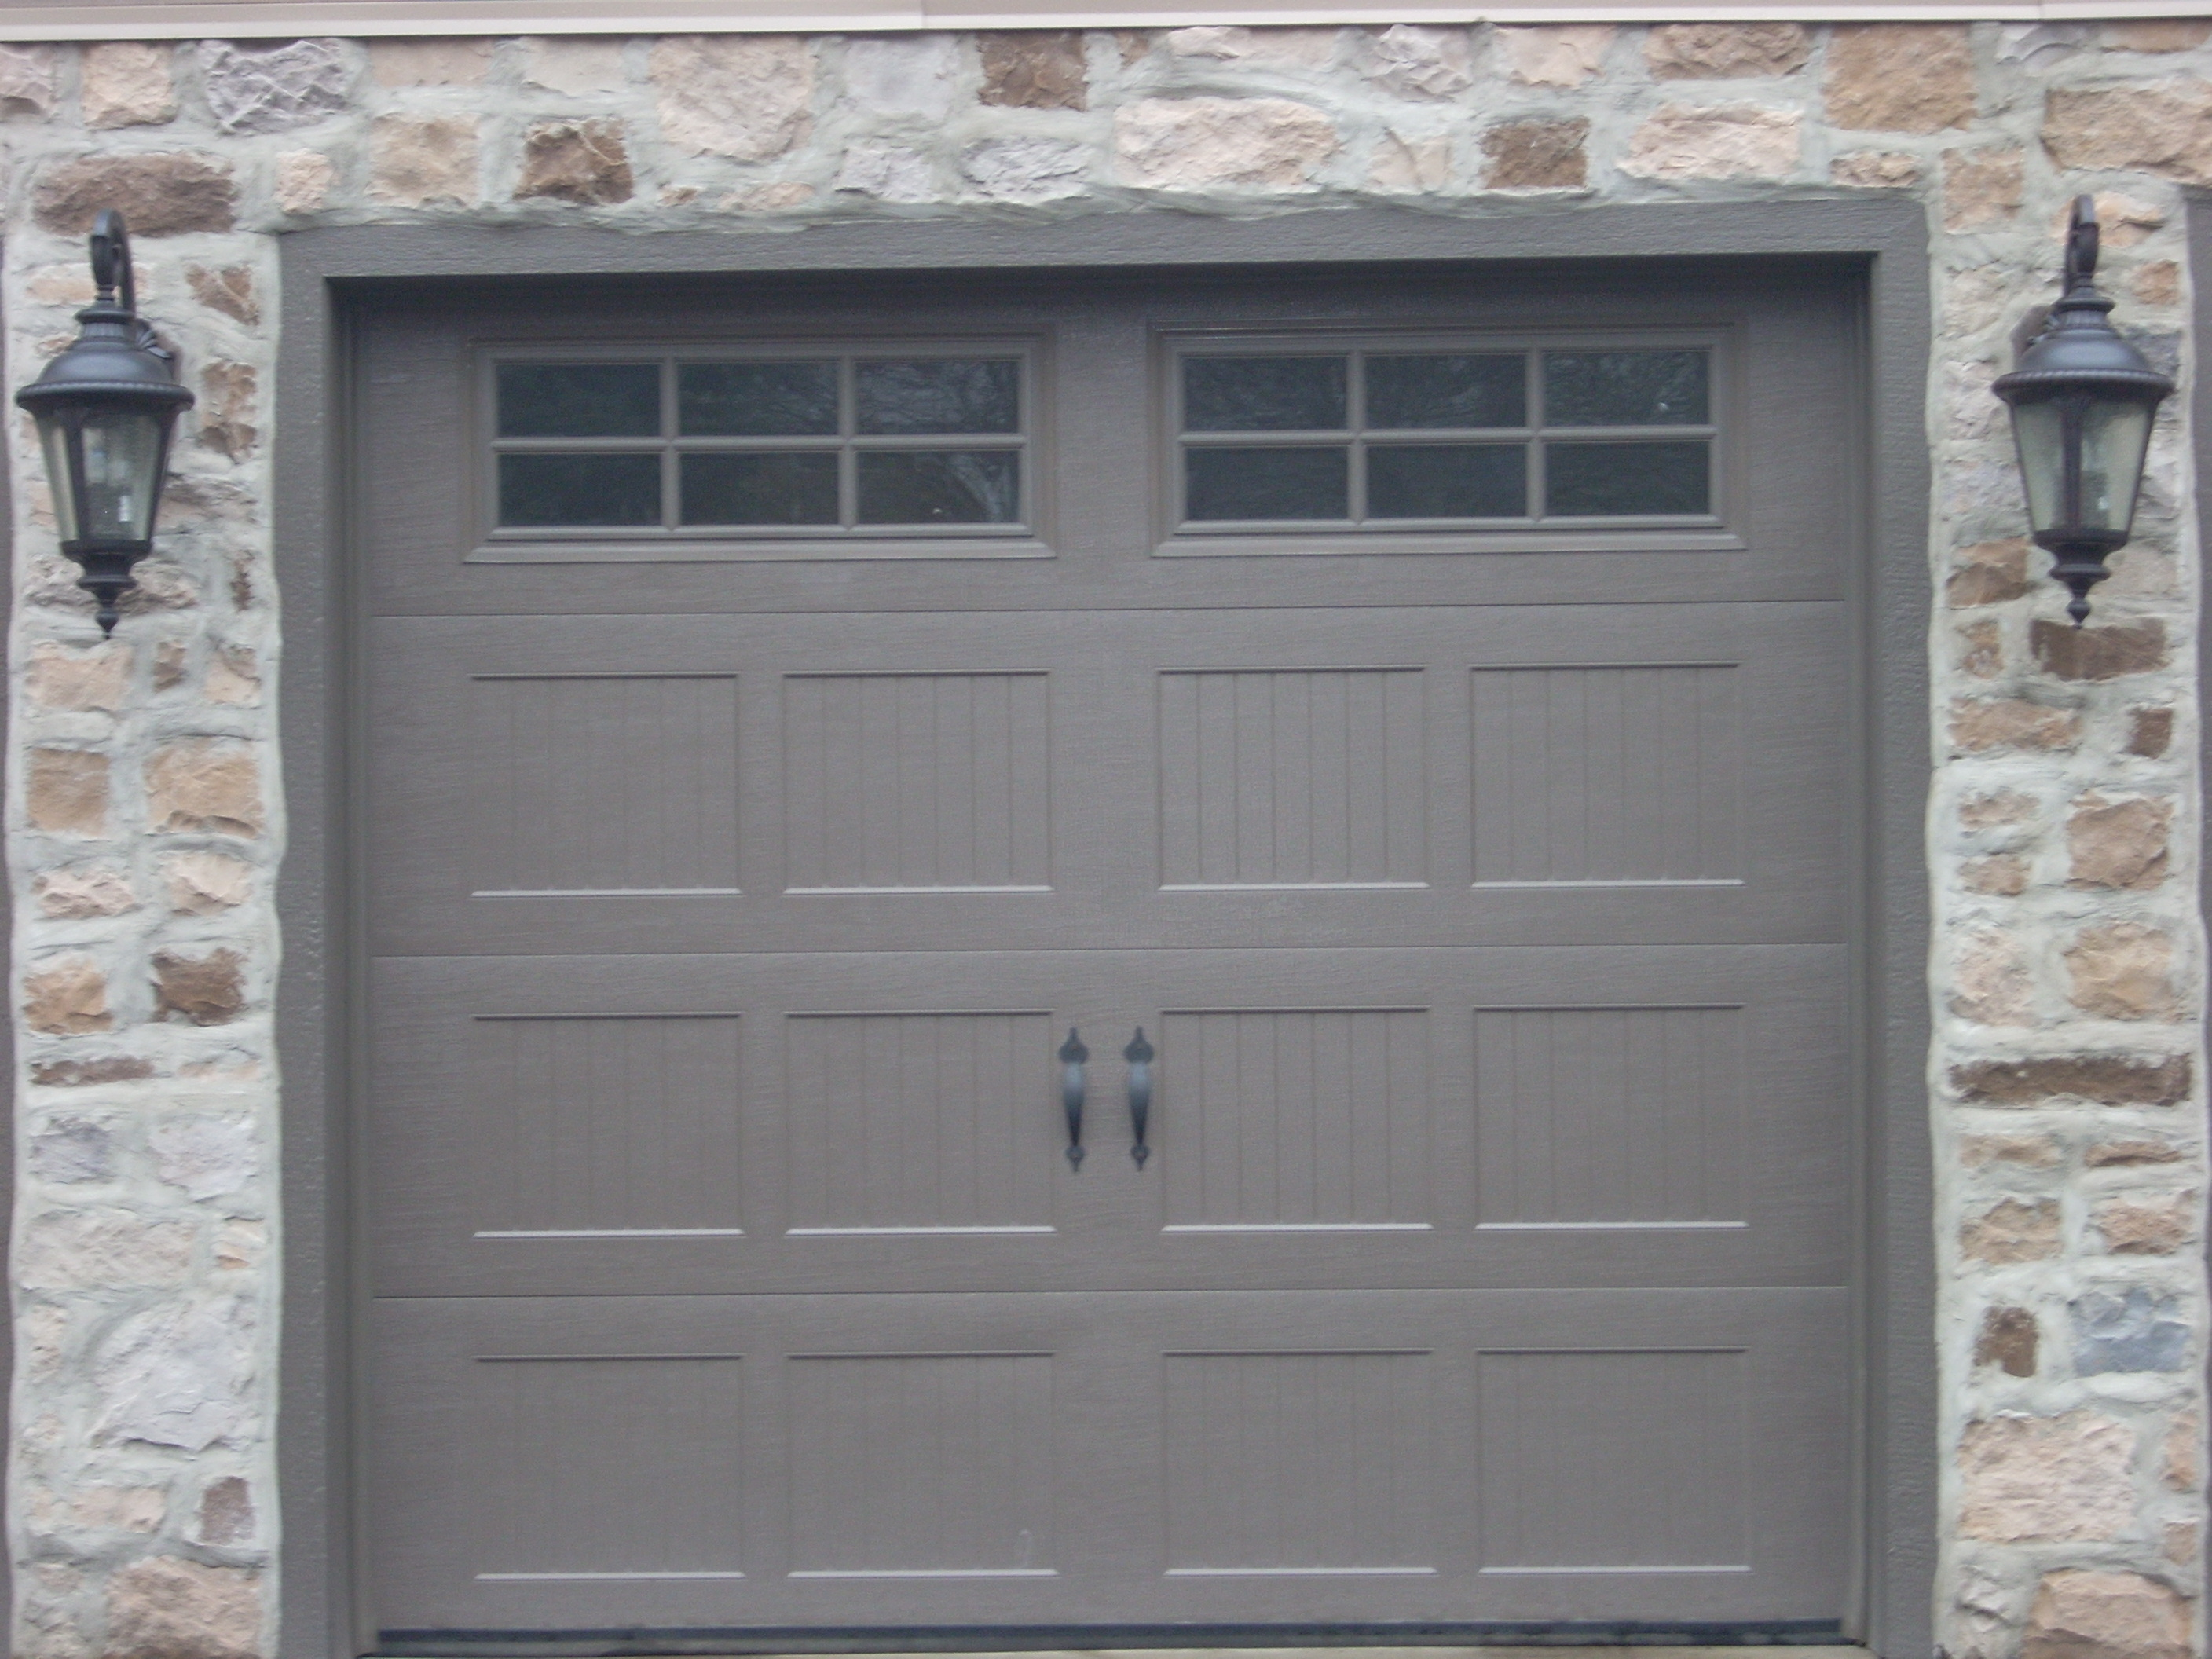 Wayne doors classic steel 8300 sonoma ranch panel for Door 9 sonoma